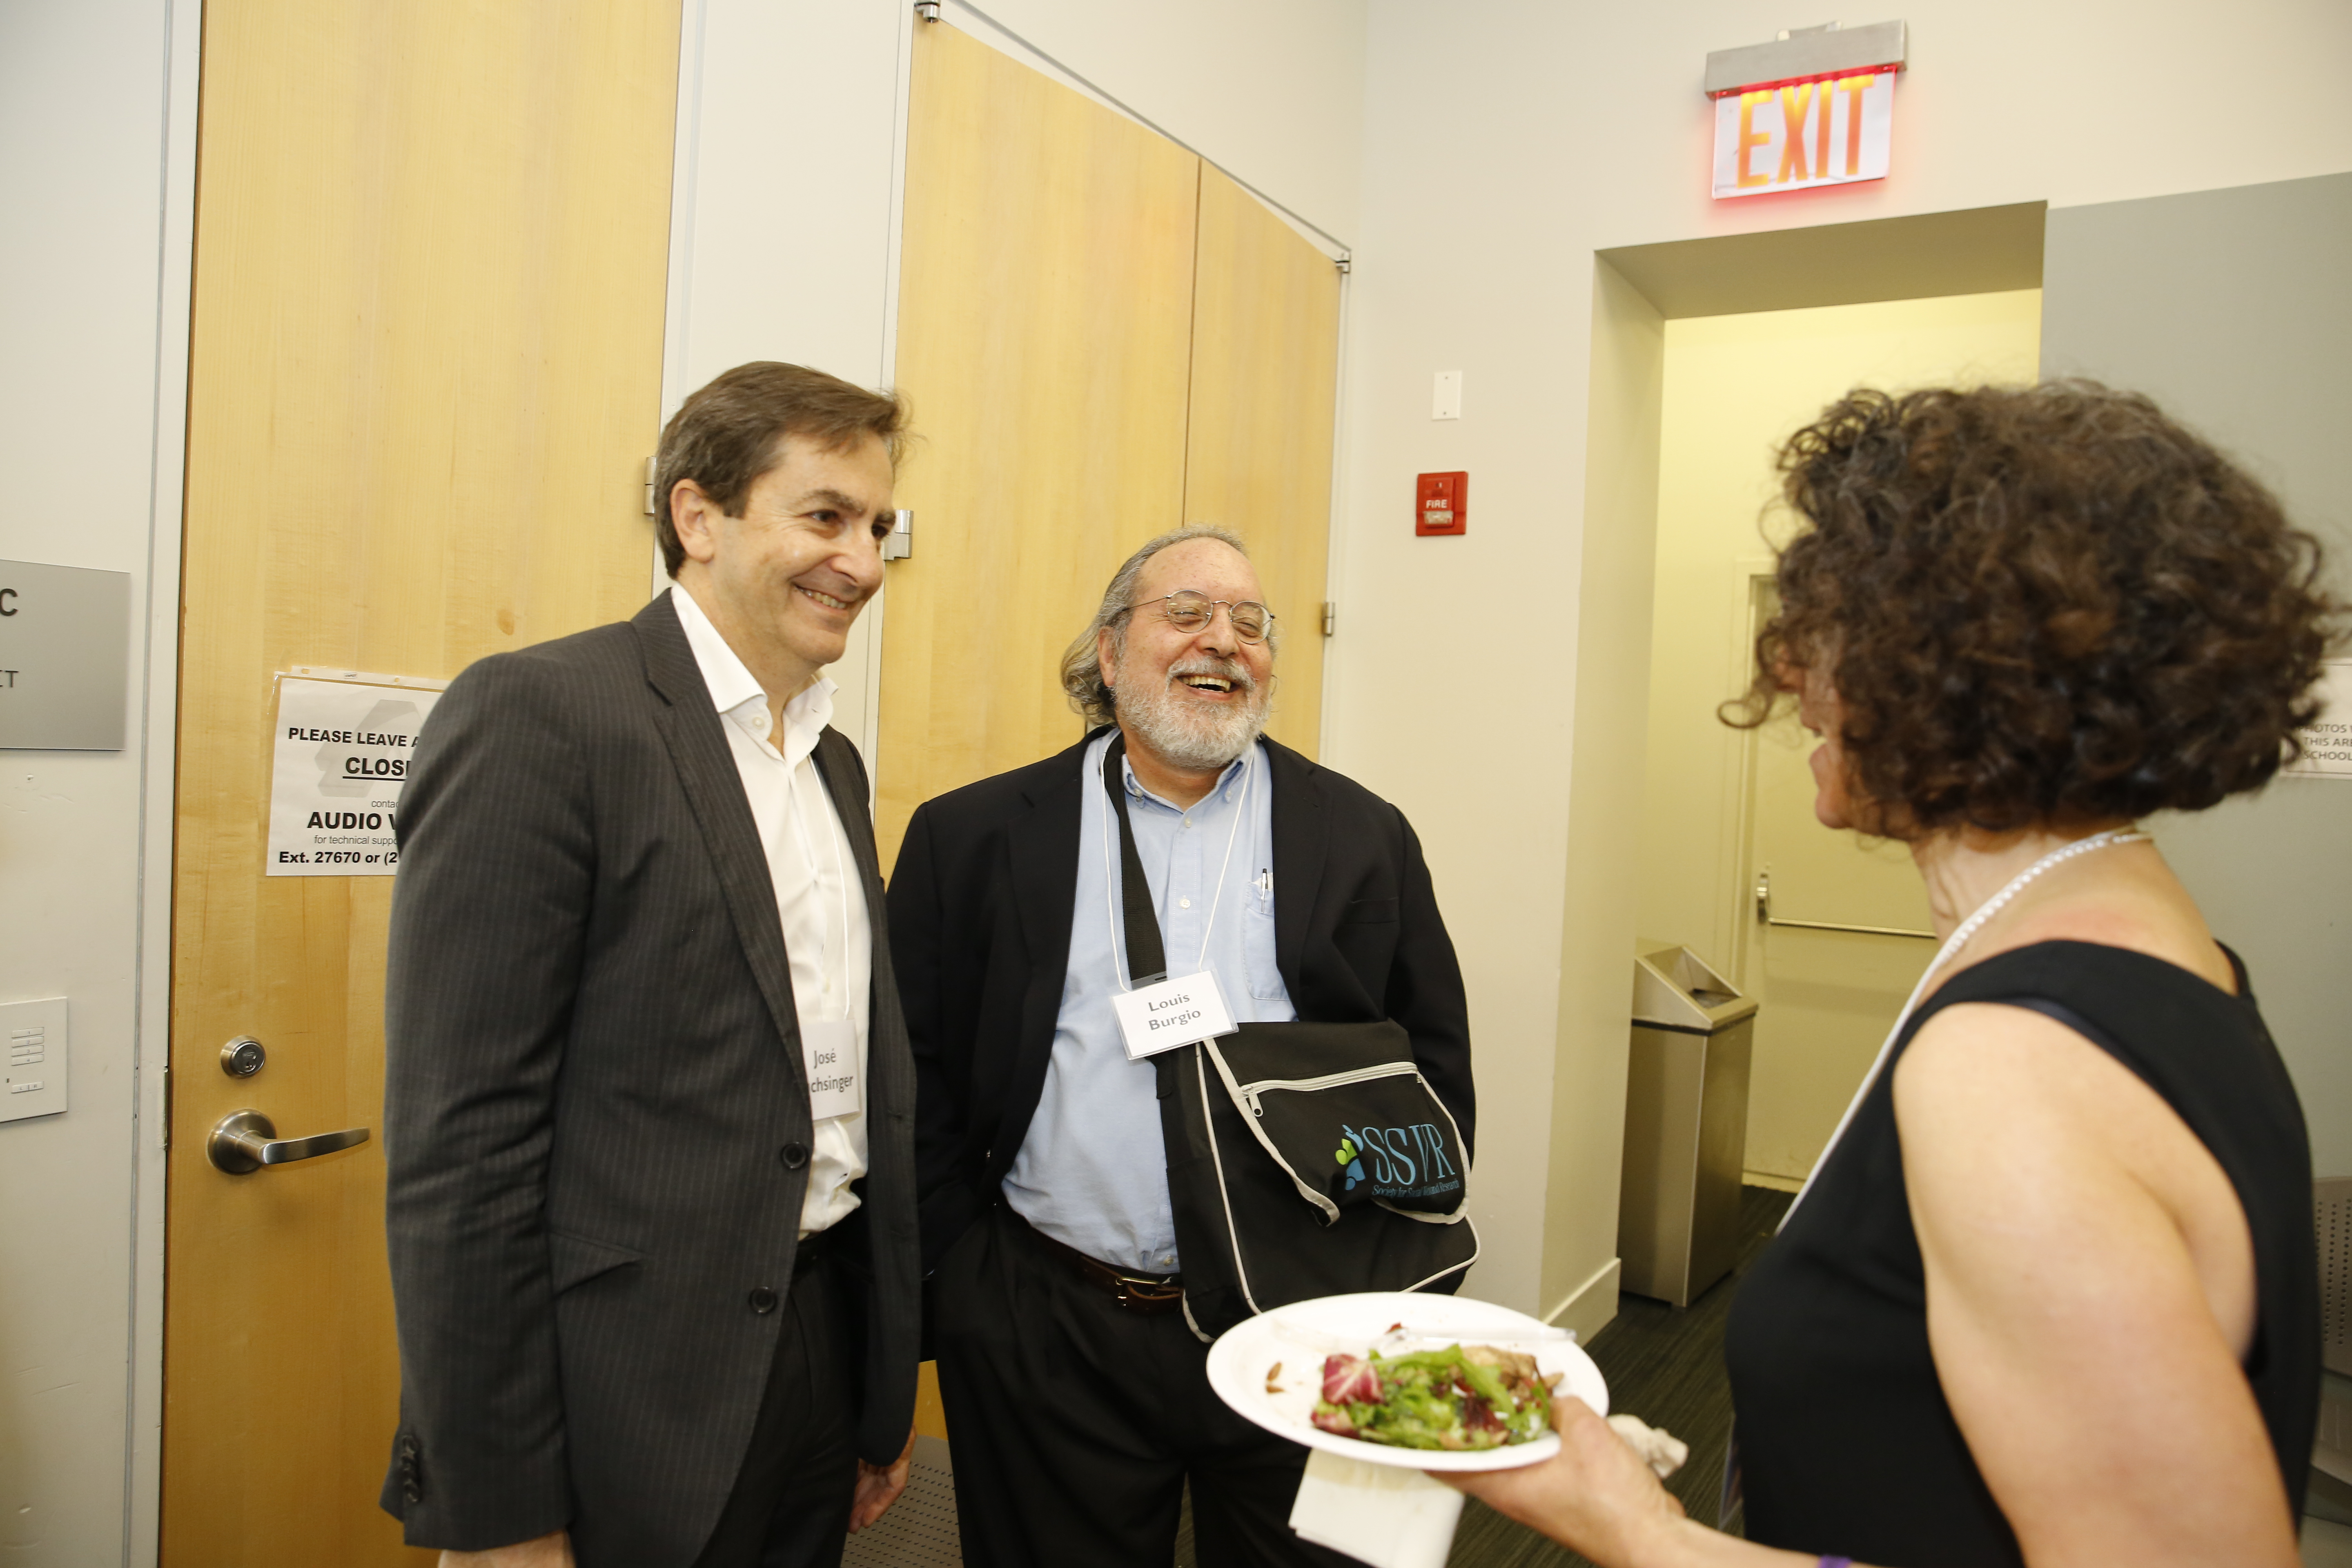 Drs. José Luchsinger and Louis Burgio with Dr. Caroline Gelman of Silberman Aging.